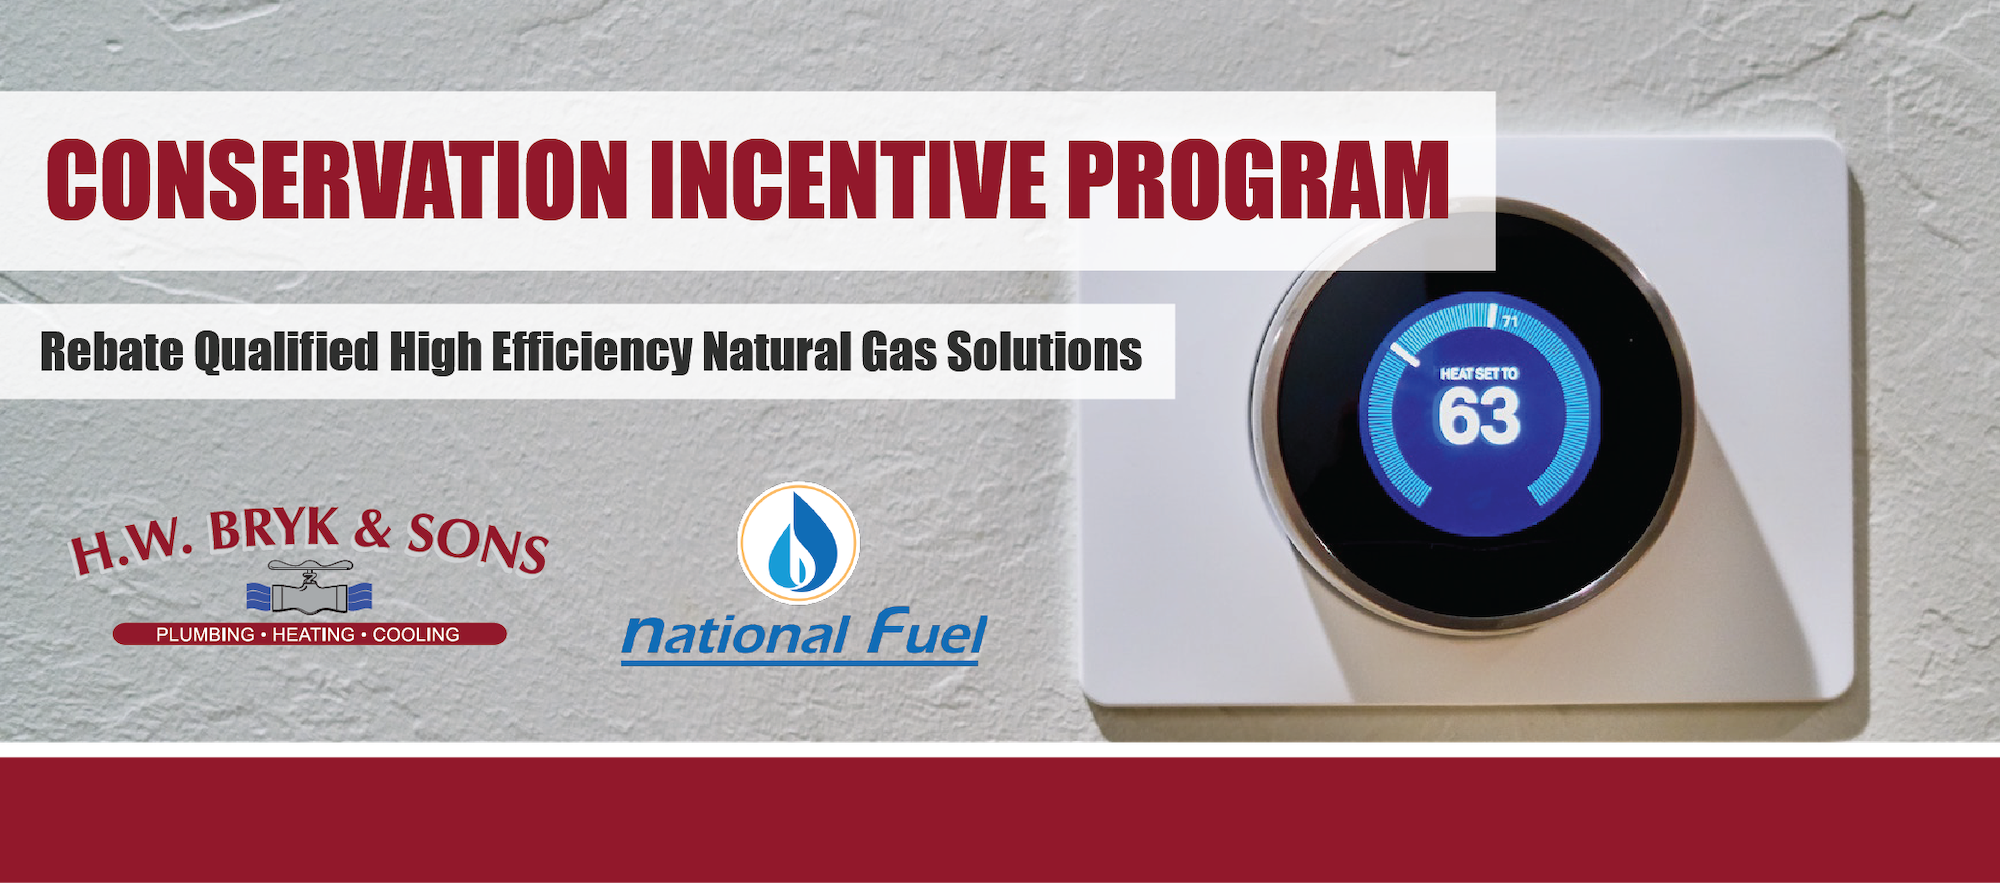 HW-Bryk-and-Sons-National-Fuel-for-Thought-Conservation-Incentive-Program-01